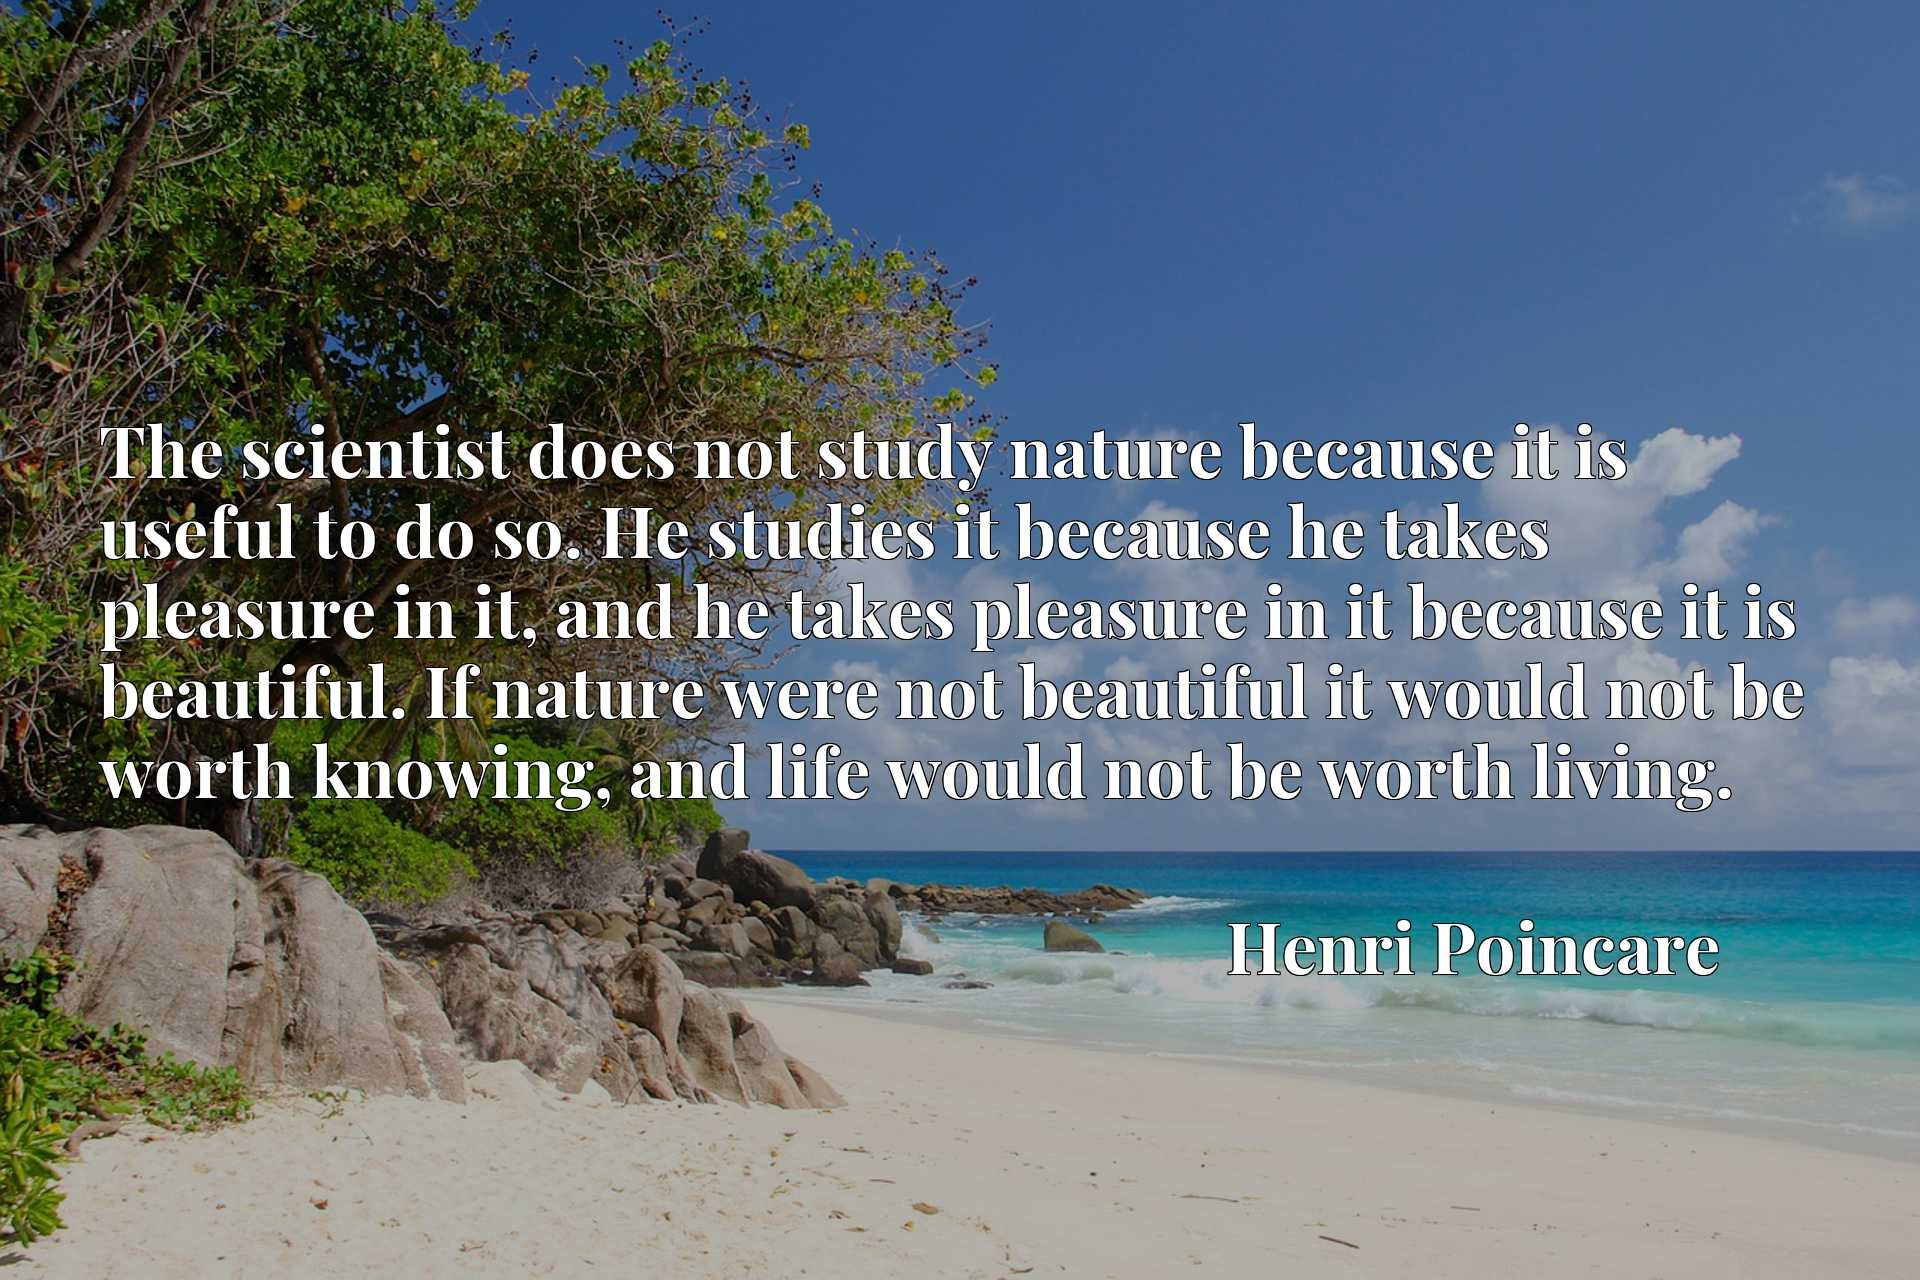 The scientist does not study nature because it is useful to do so. He studies it because he takes pleasure in it, and he takes pleasure in it because it is beautiful. If nature were not beautiful it would not be worth knowing, and life would not be worth living.